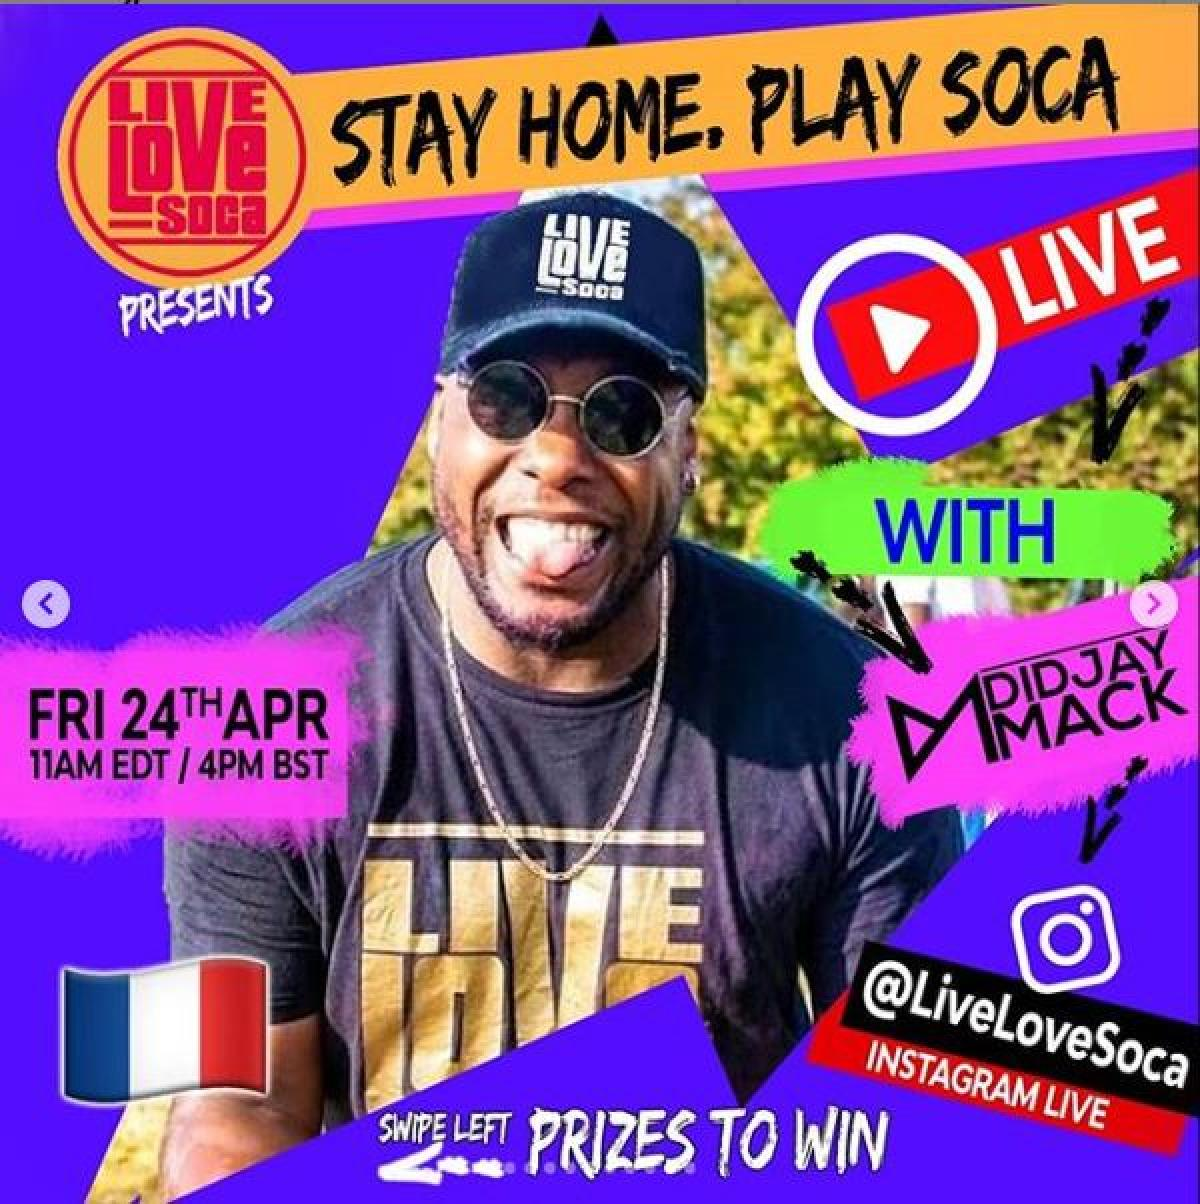 Stay Home, Play Soca flyer or graphic.